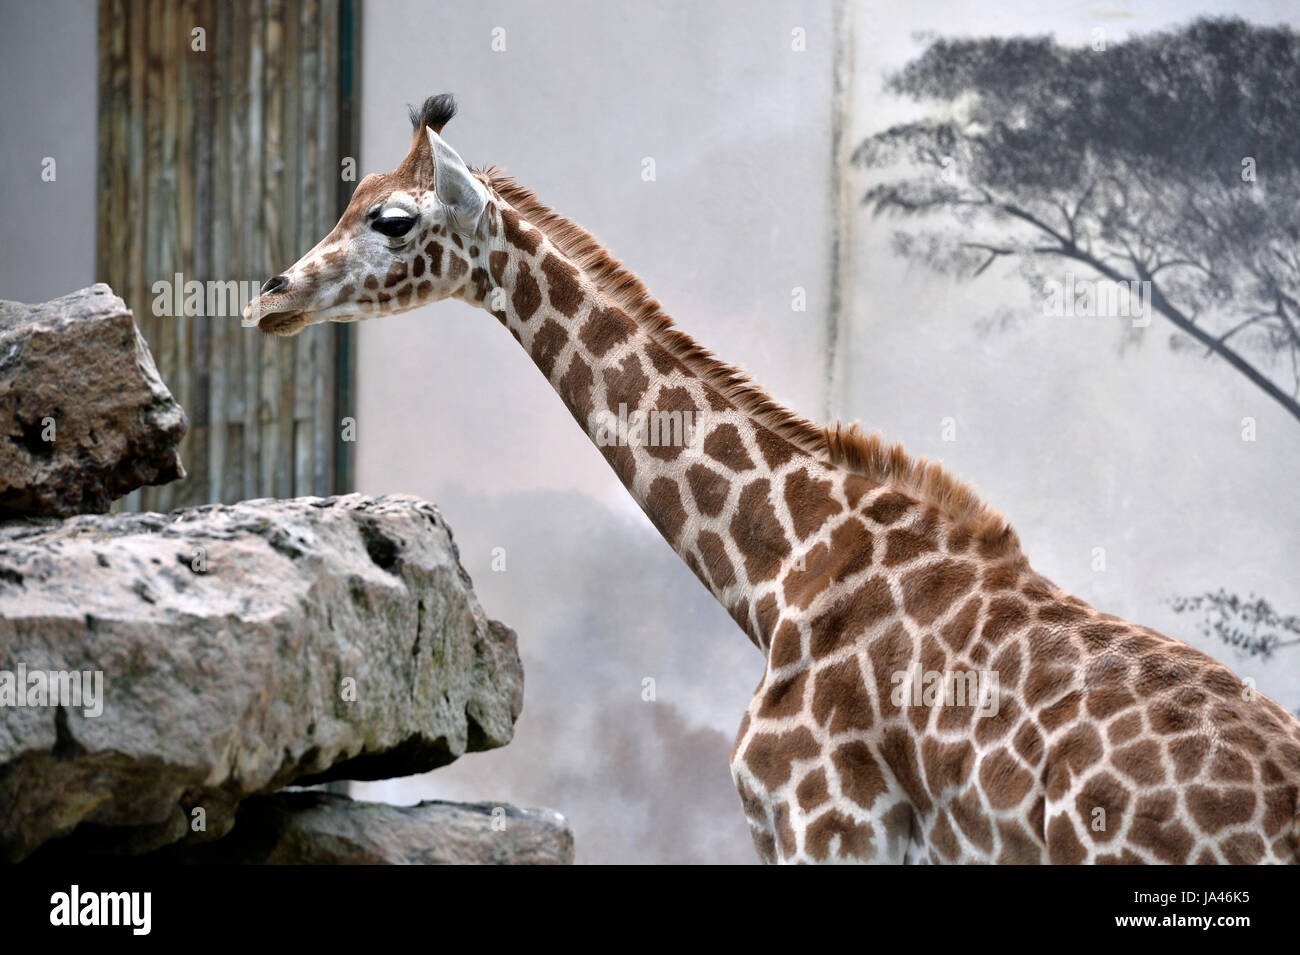 Zoo de la Flèche, France - Stock Image